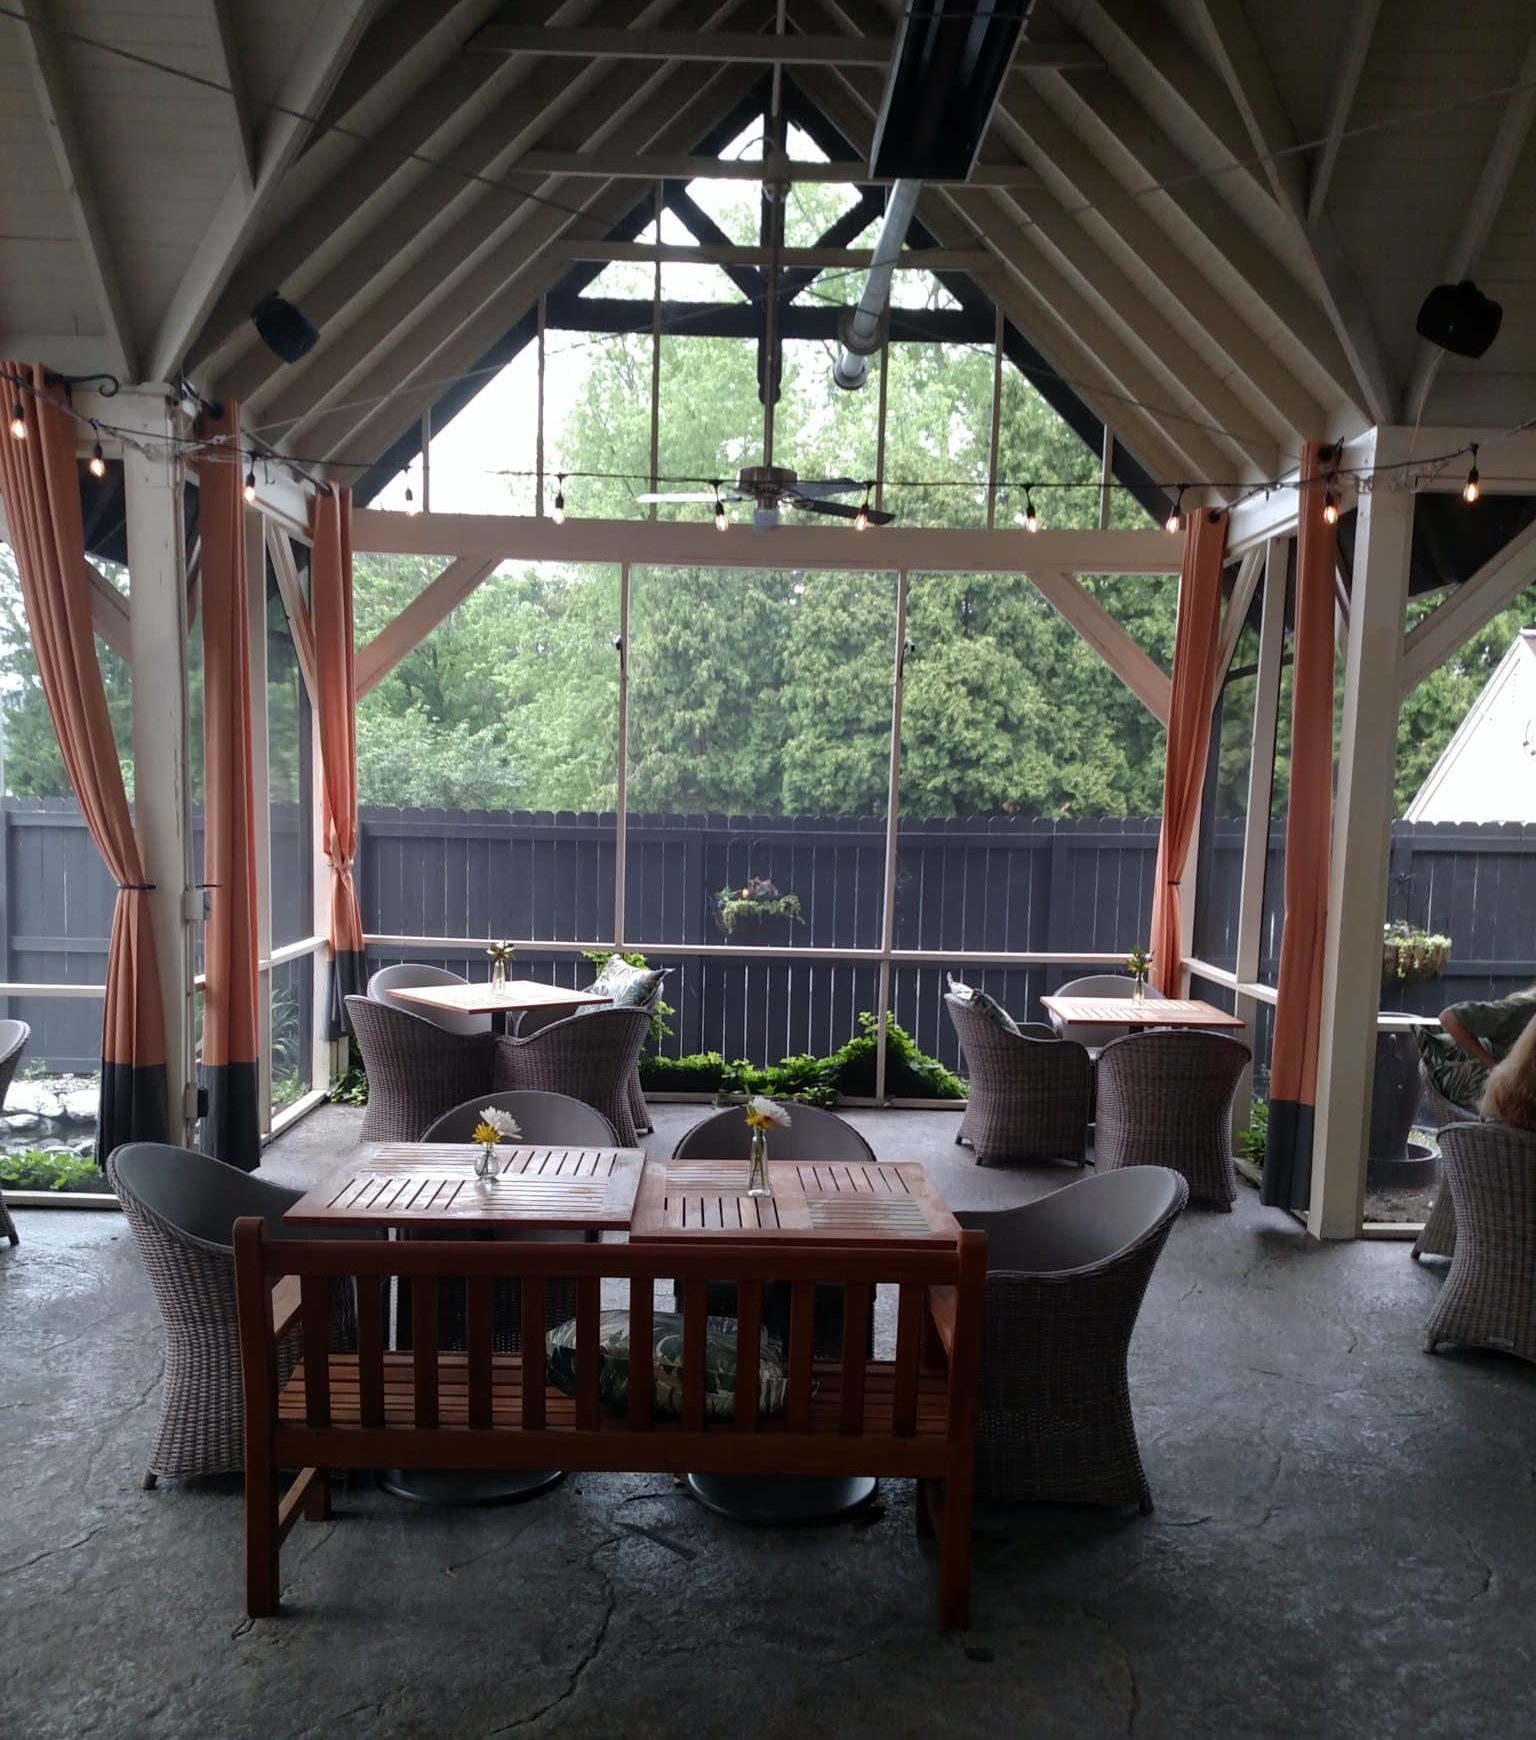 covered porch showing tables and chairs